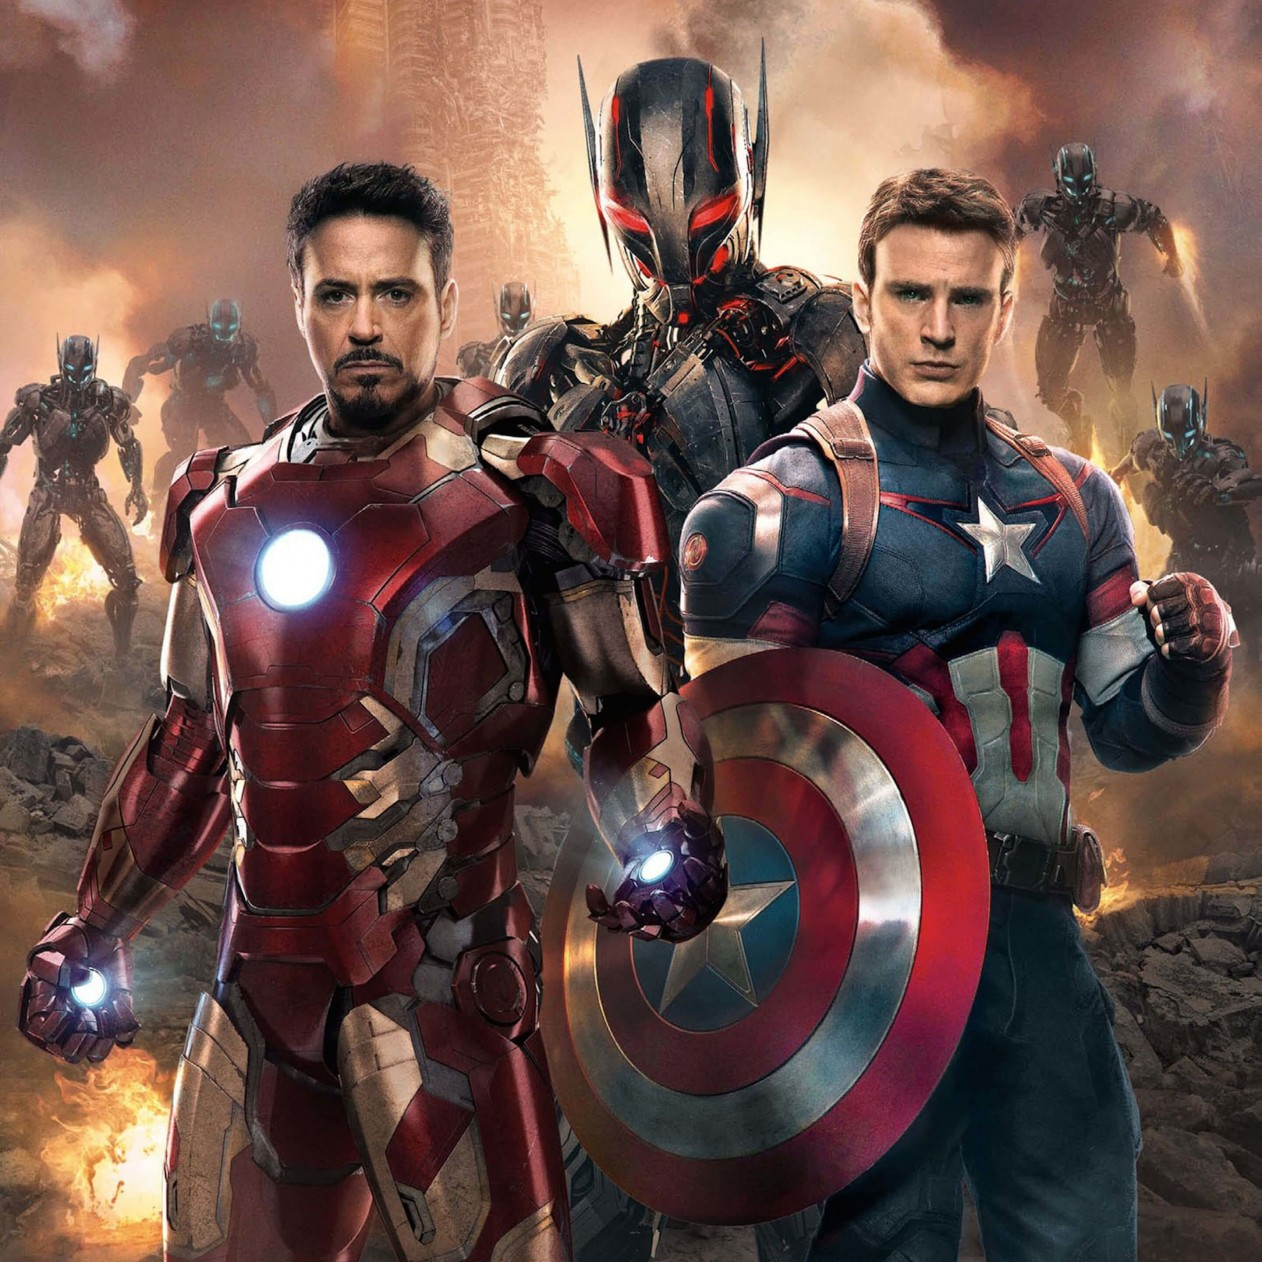 The Avengers: Age of Ultron - Iron Man and Captain America Wallpaper for Apple iPad mini